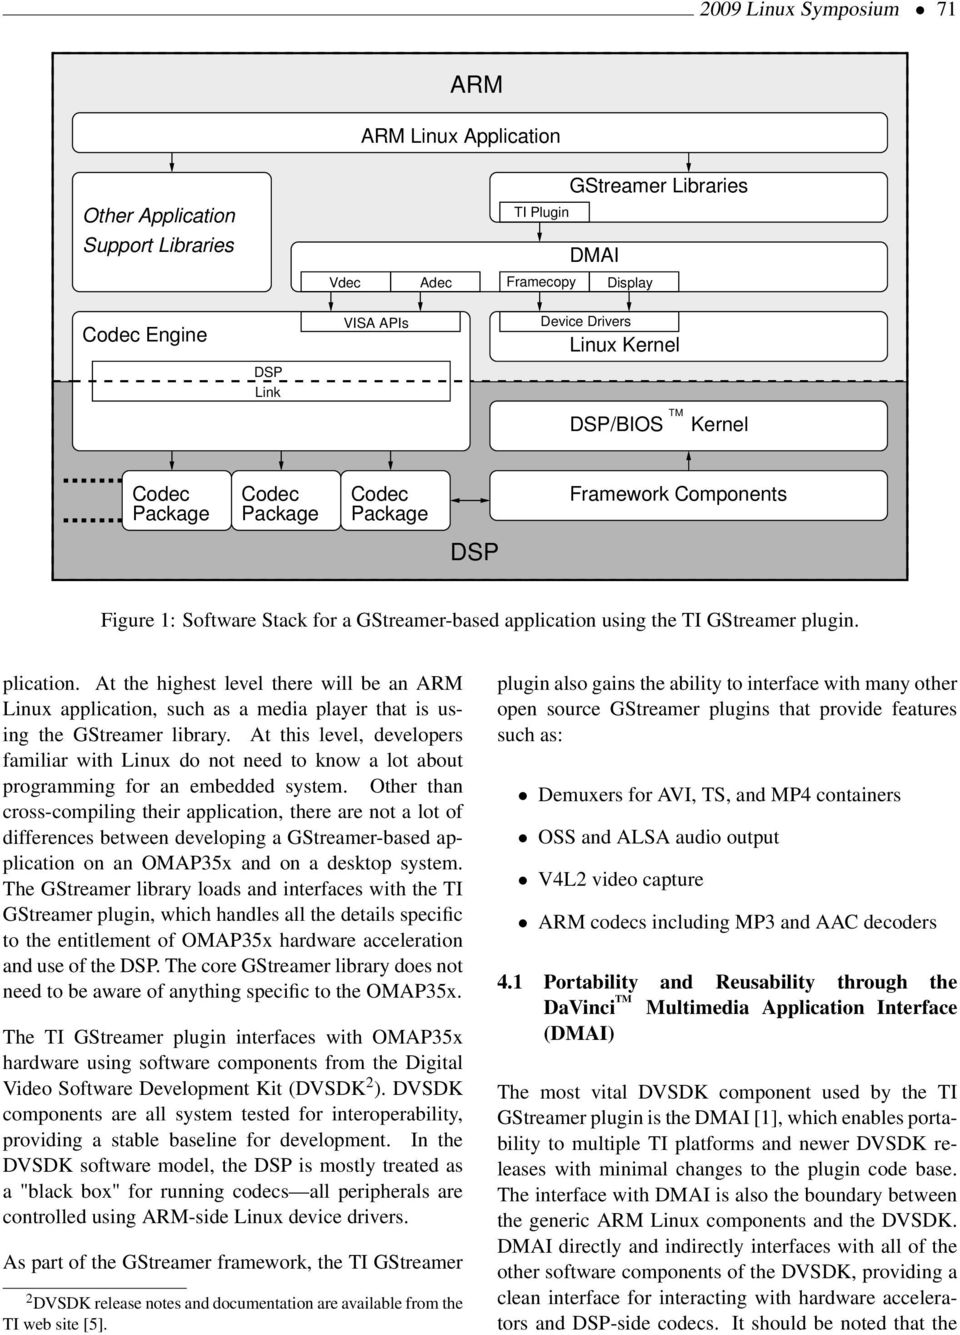 GStreamer on Texas Instruments OMAP35x Processors - PDF